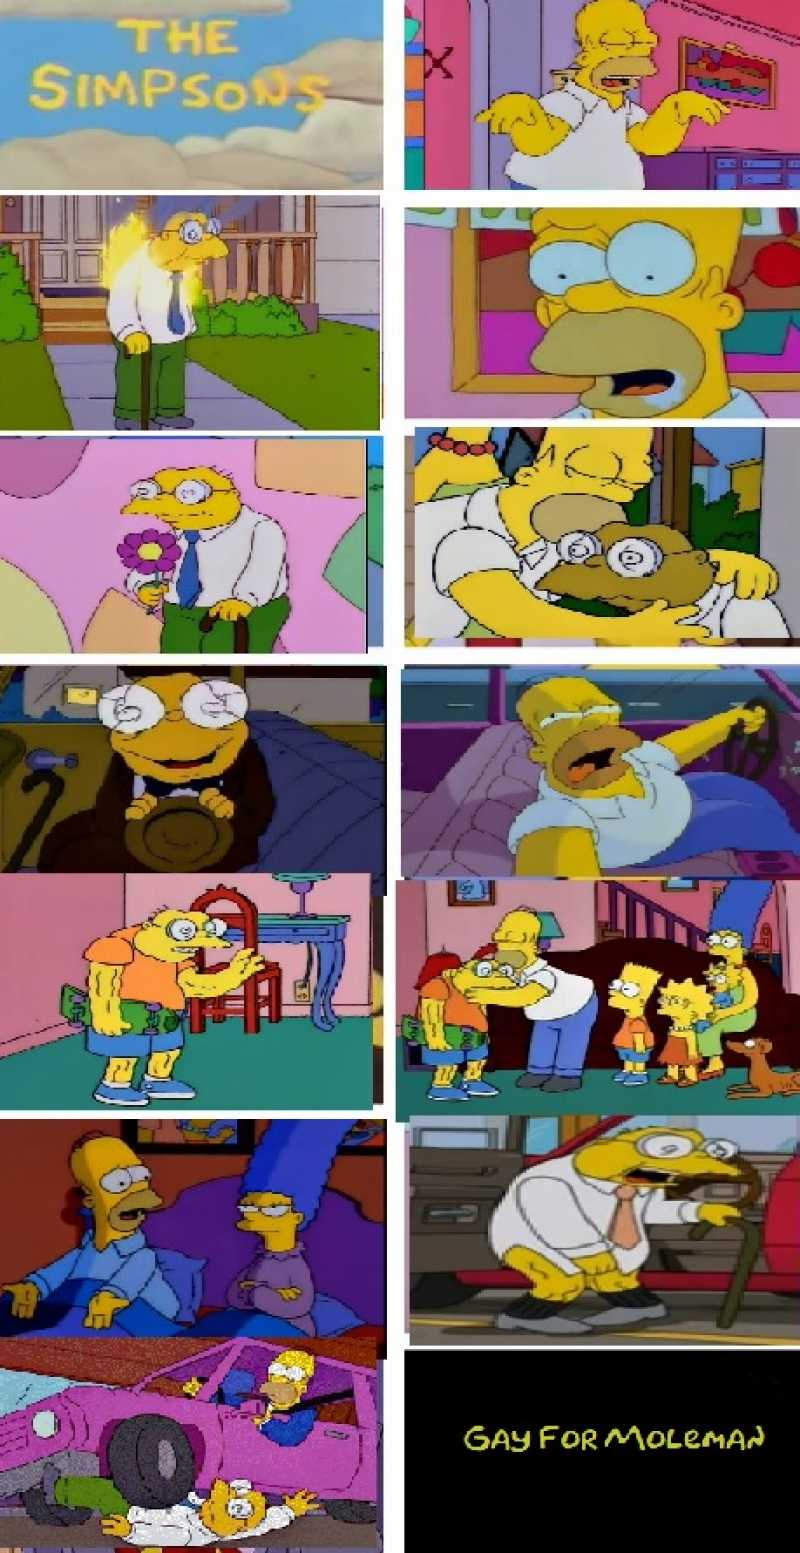 When Homer finds out that Hans Moleman is FAH-LAMING (just the way he likes 'em!), he starts a relationship so intense he wants Hans to join the family. Marge doesn't approve, so Homer breaks it off in the worst way possible.